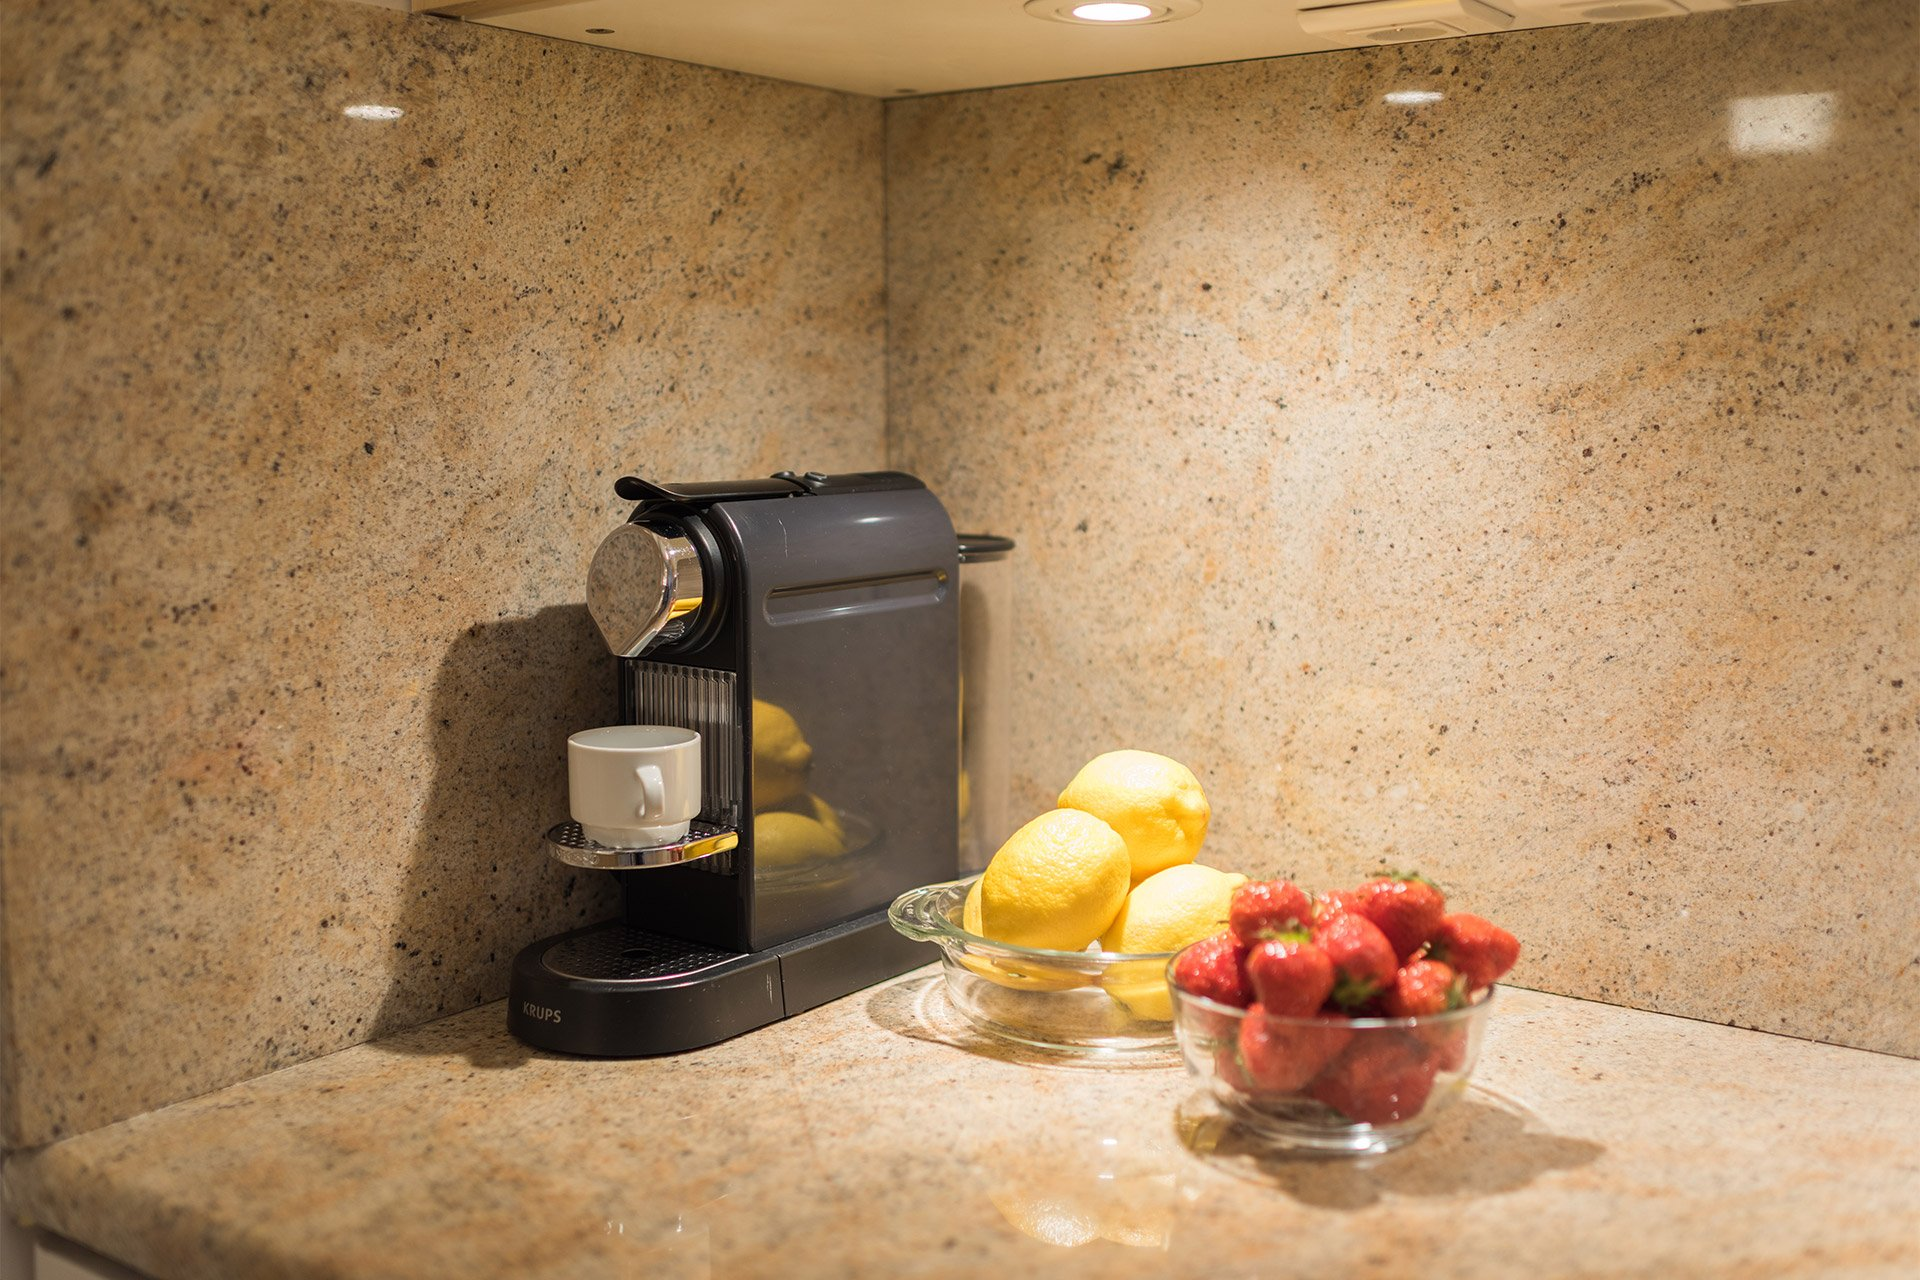 Nespresso machine in the kitchen of the Pomerol vacation rental offered by Paris Perfect